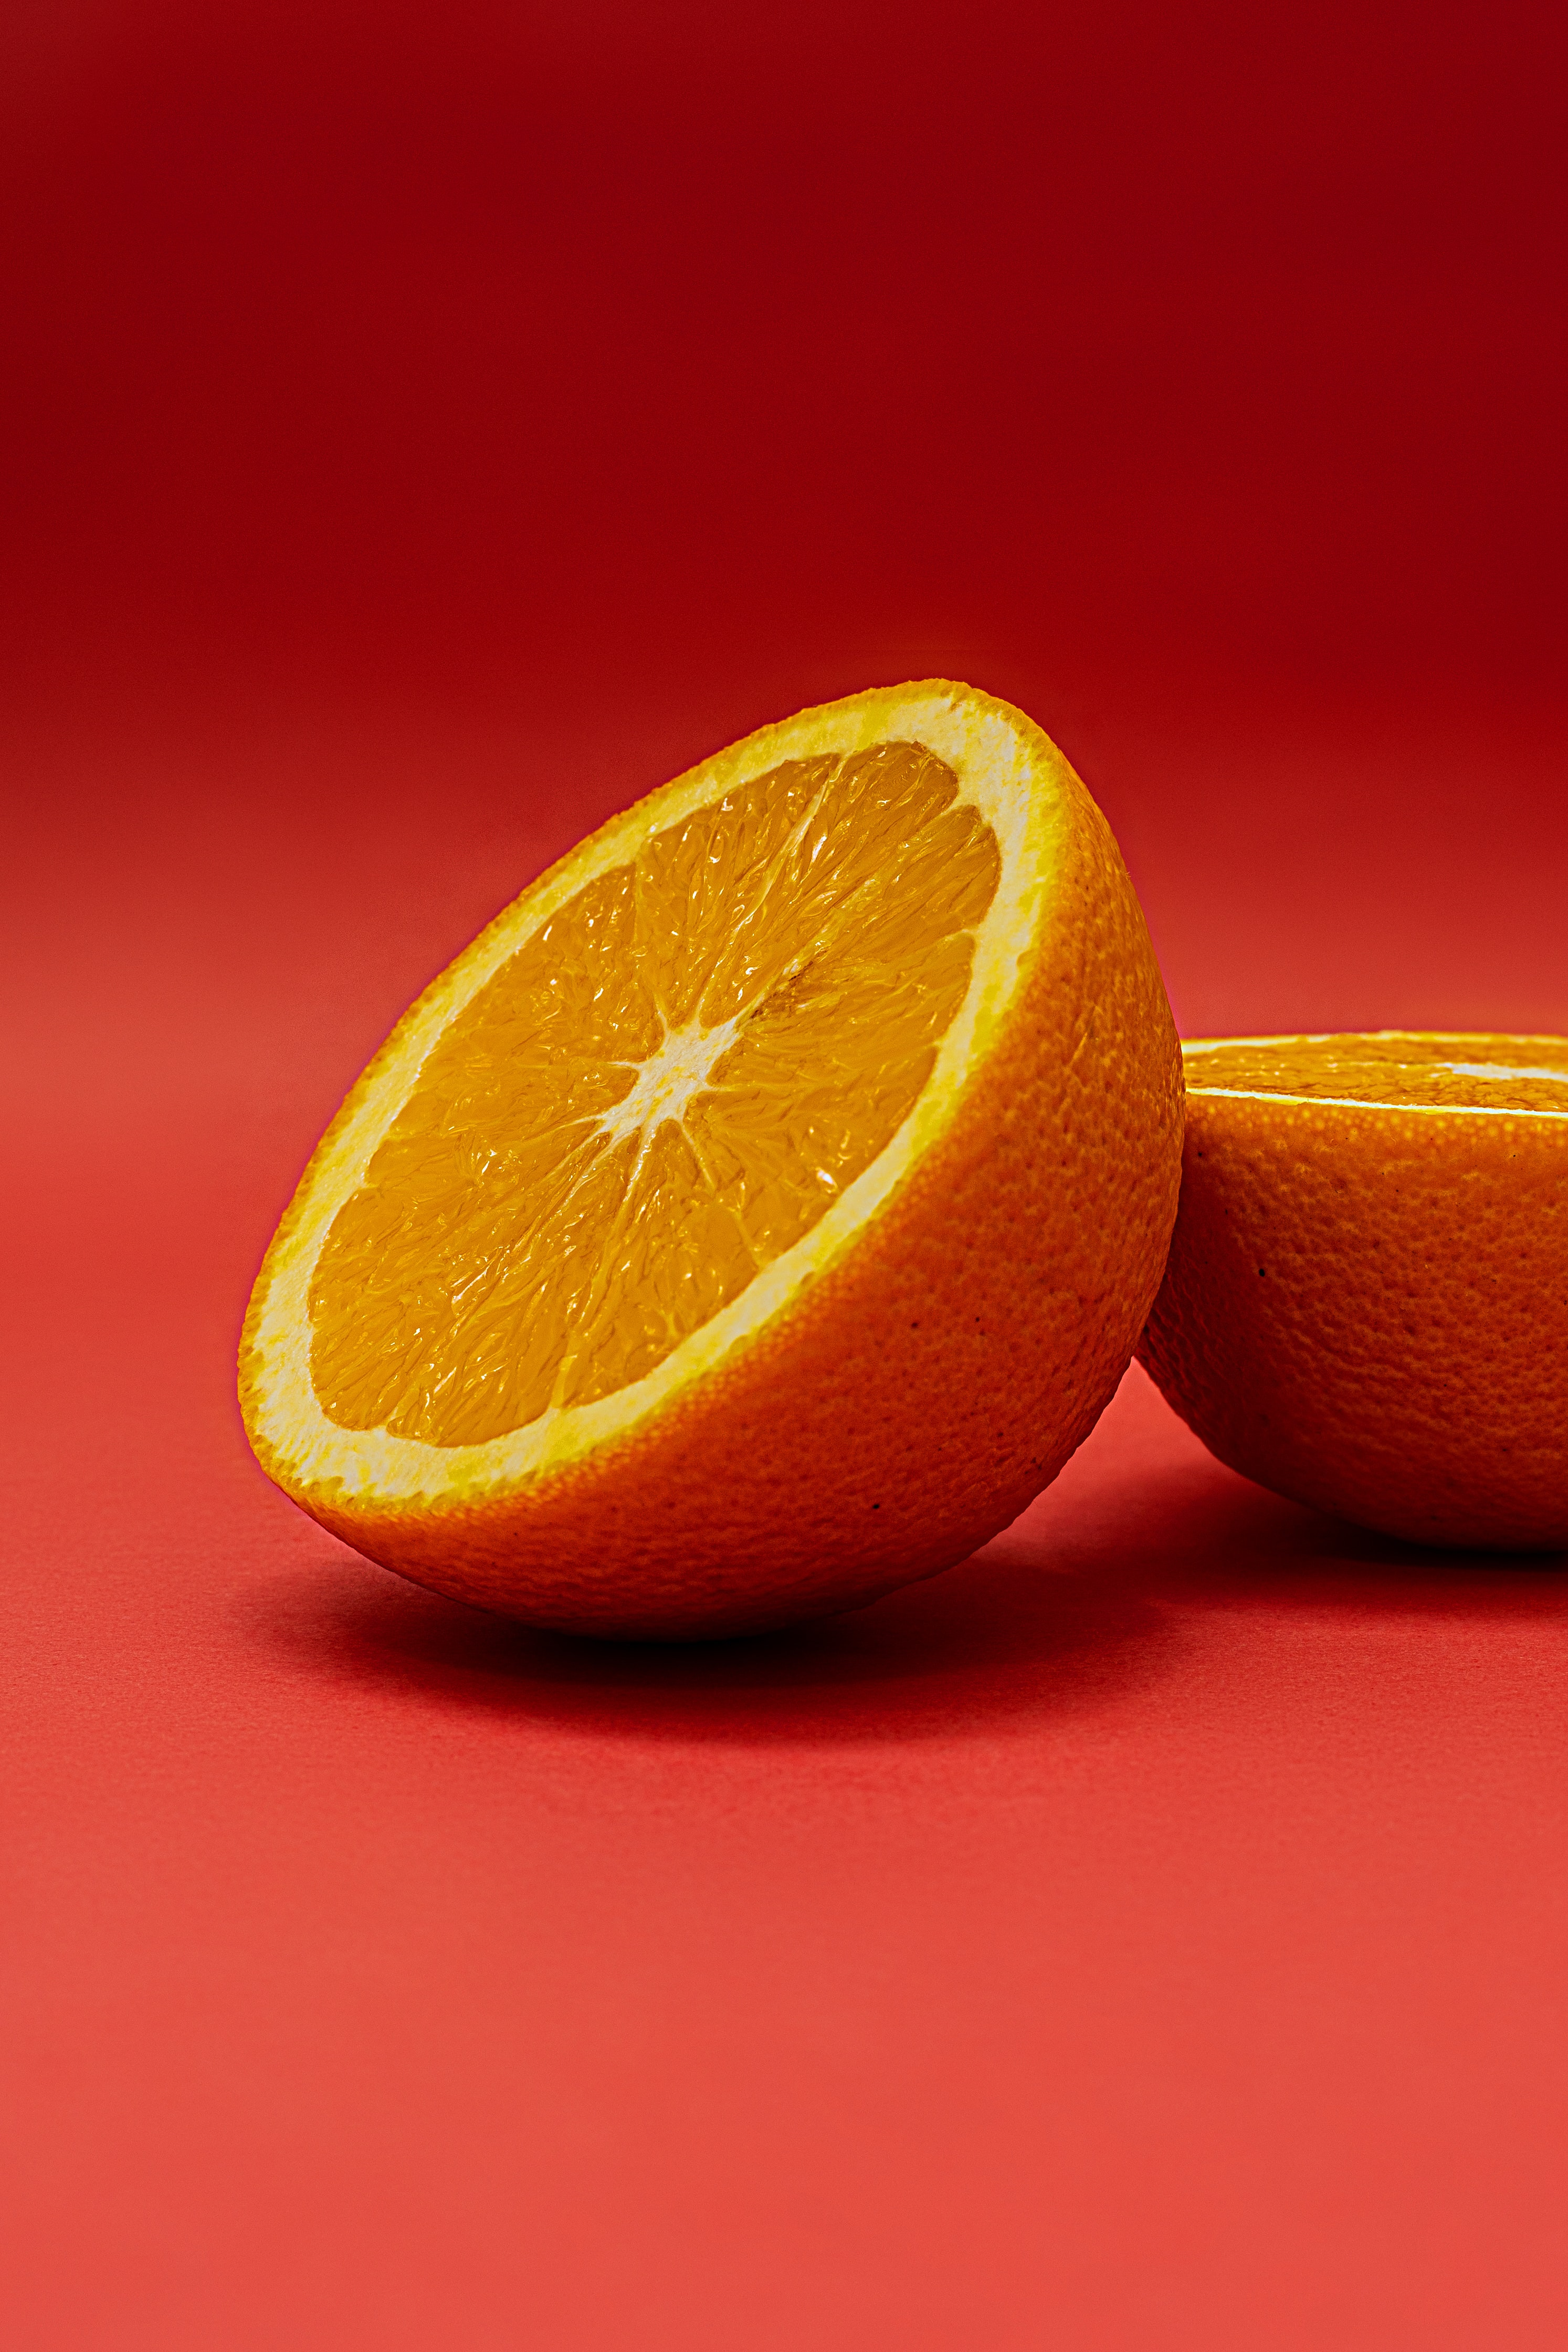 65724 download wallpaper Food, Fruit, Citrus, Lobules, Slices screensavers and pictures for free